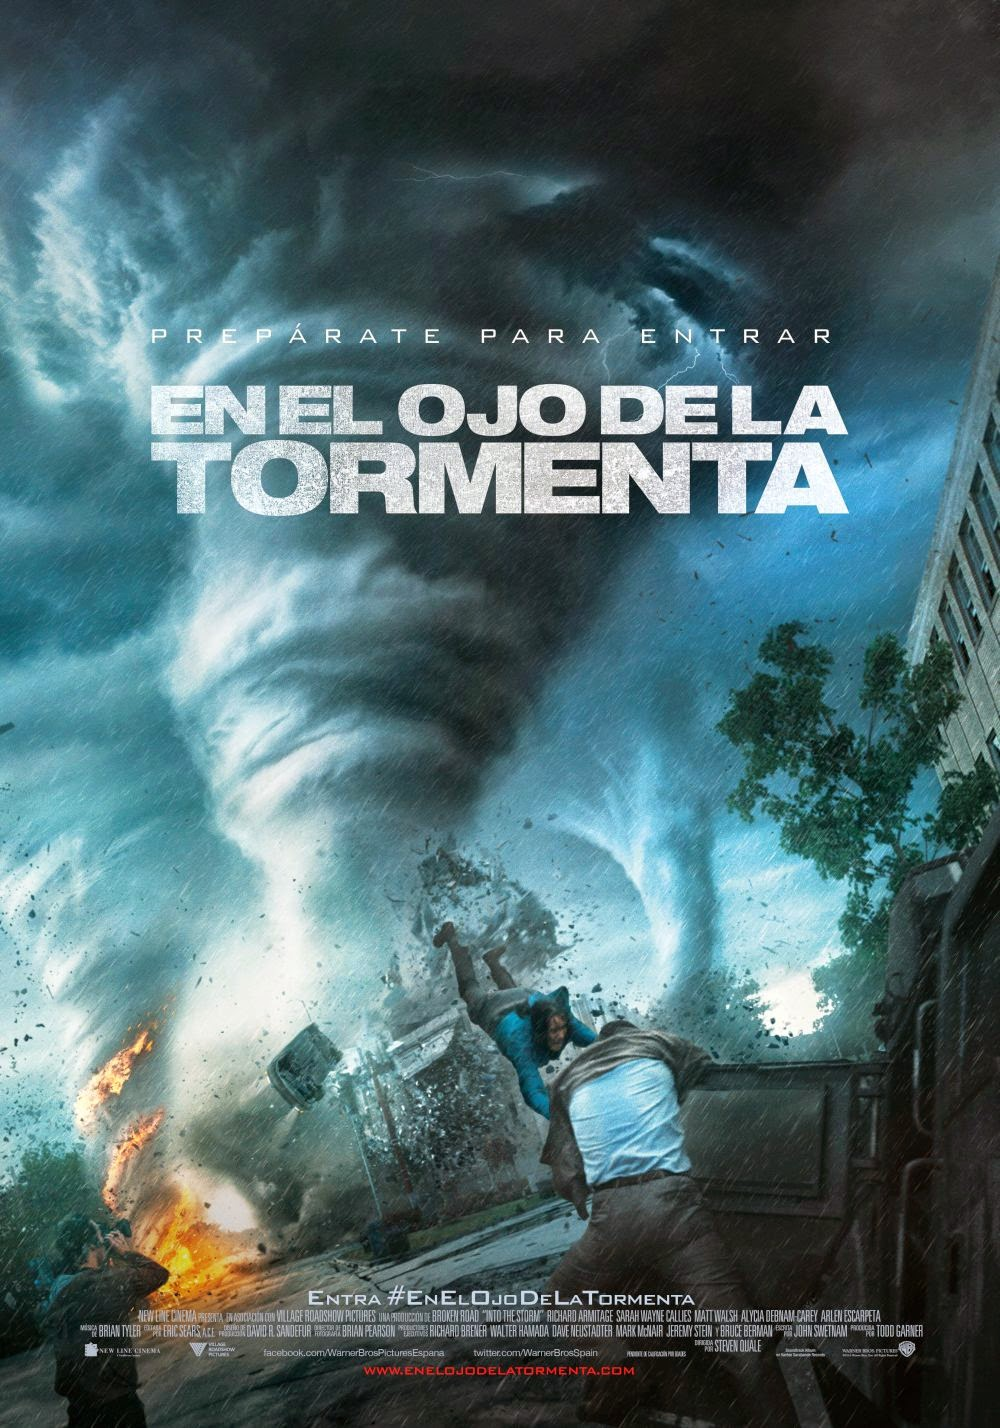 En el ojo de la tormenta Ver gratis online en vivo streaming sin descarga ni torrent